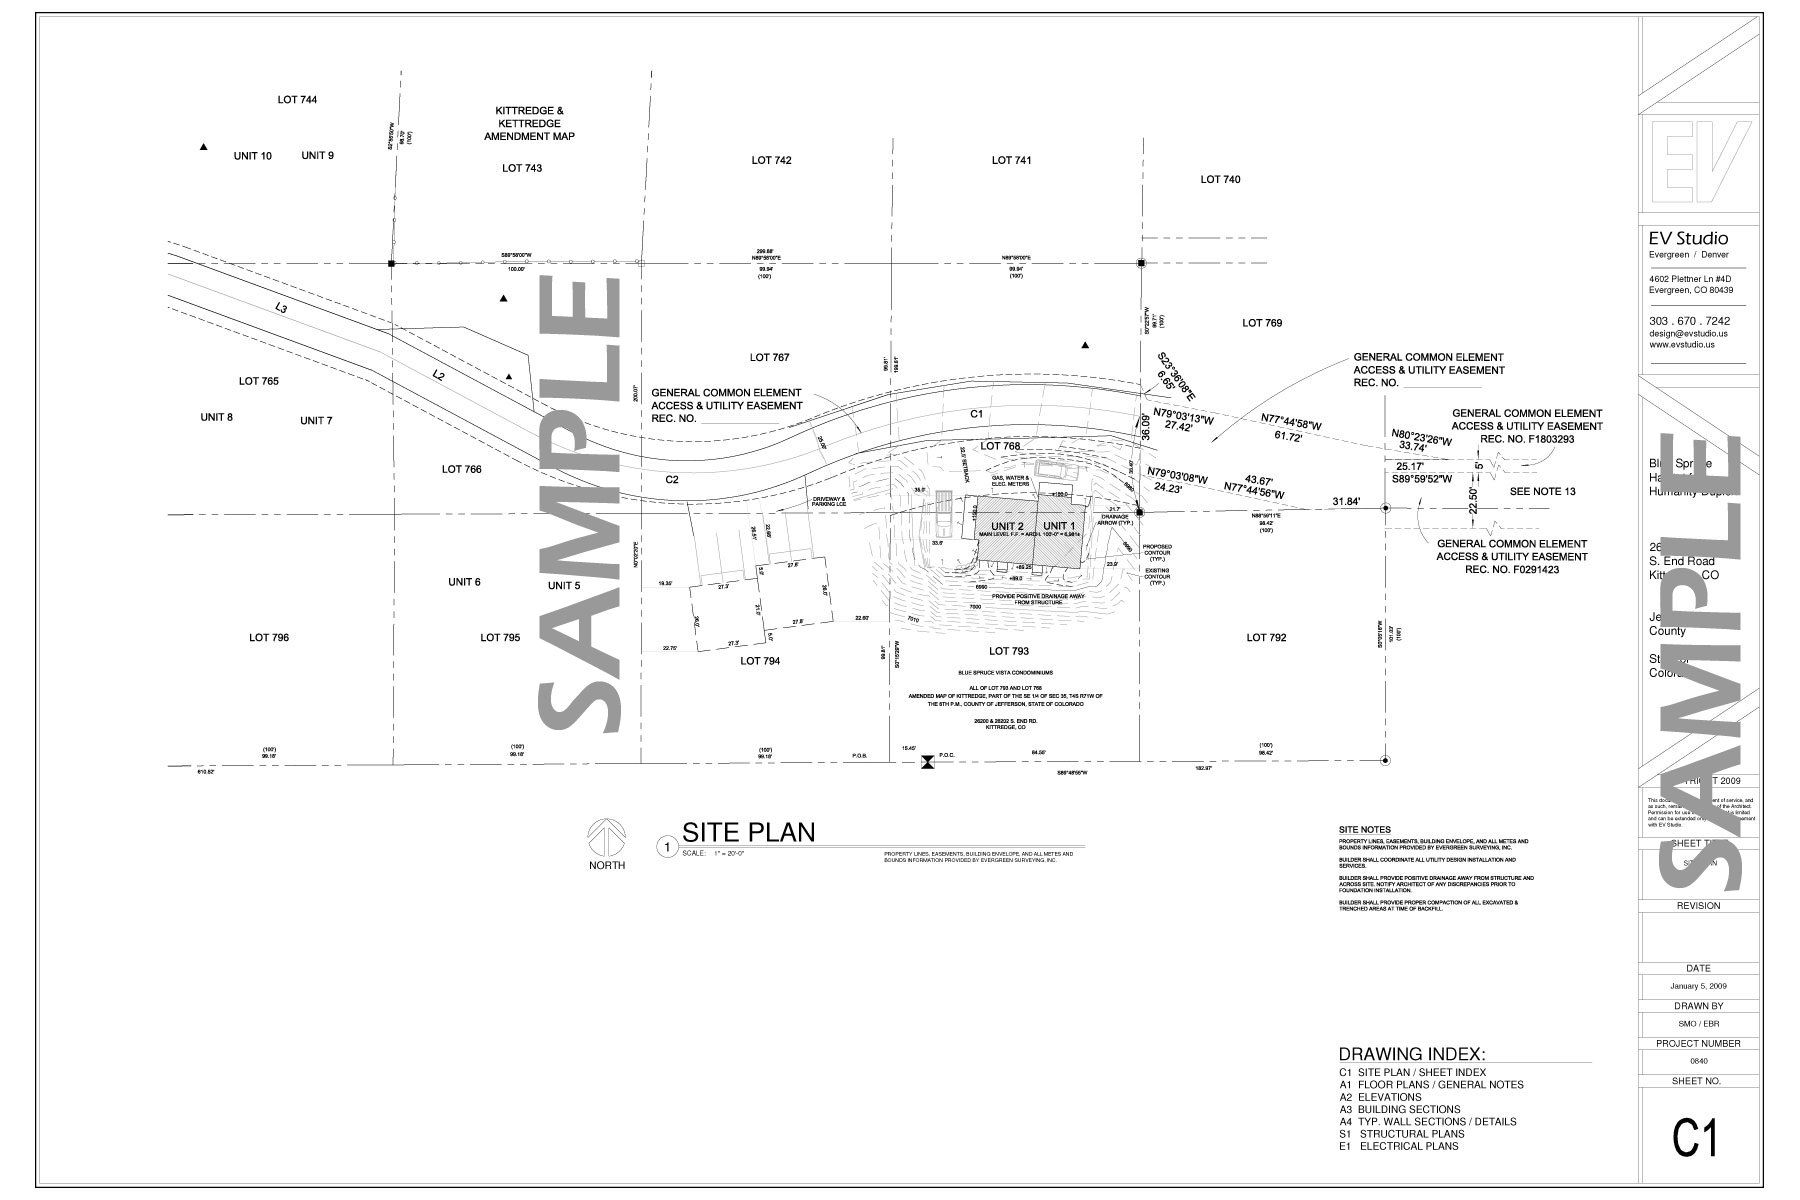 Blue spruce habitat for humanity duplex plans evstudio architect blue spruce habitat for humanity duplex plans evstudio architect engineer denver evergreen colorado austin texas architect malvernweather Image collections